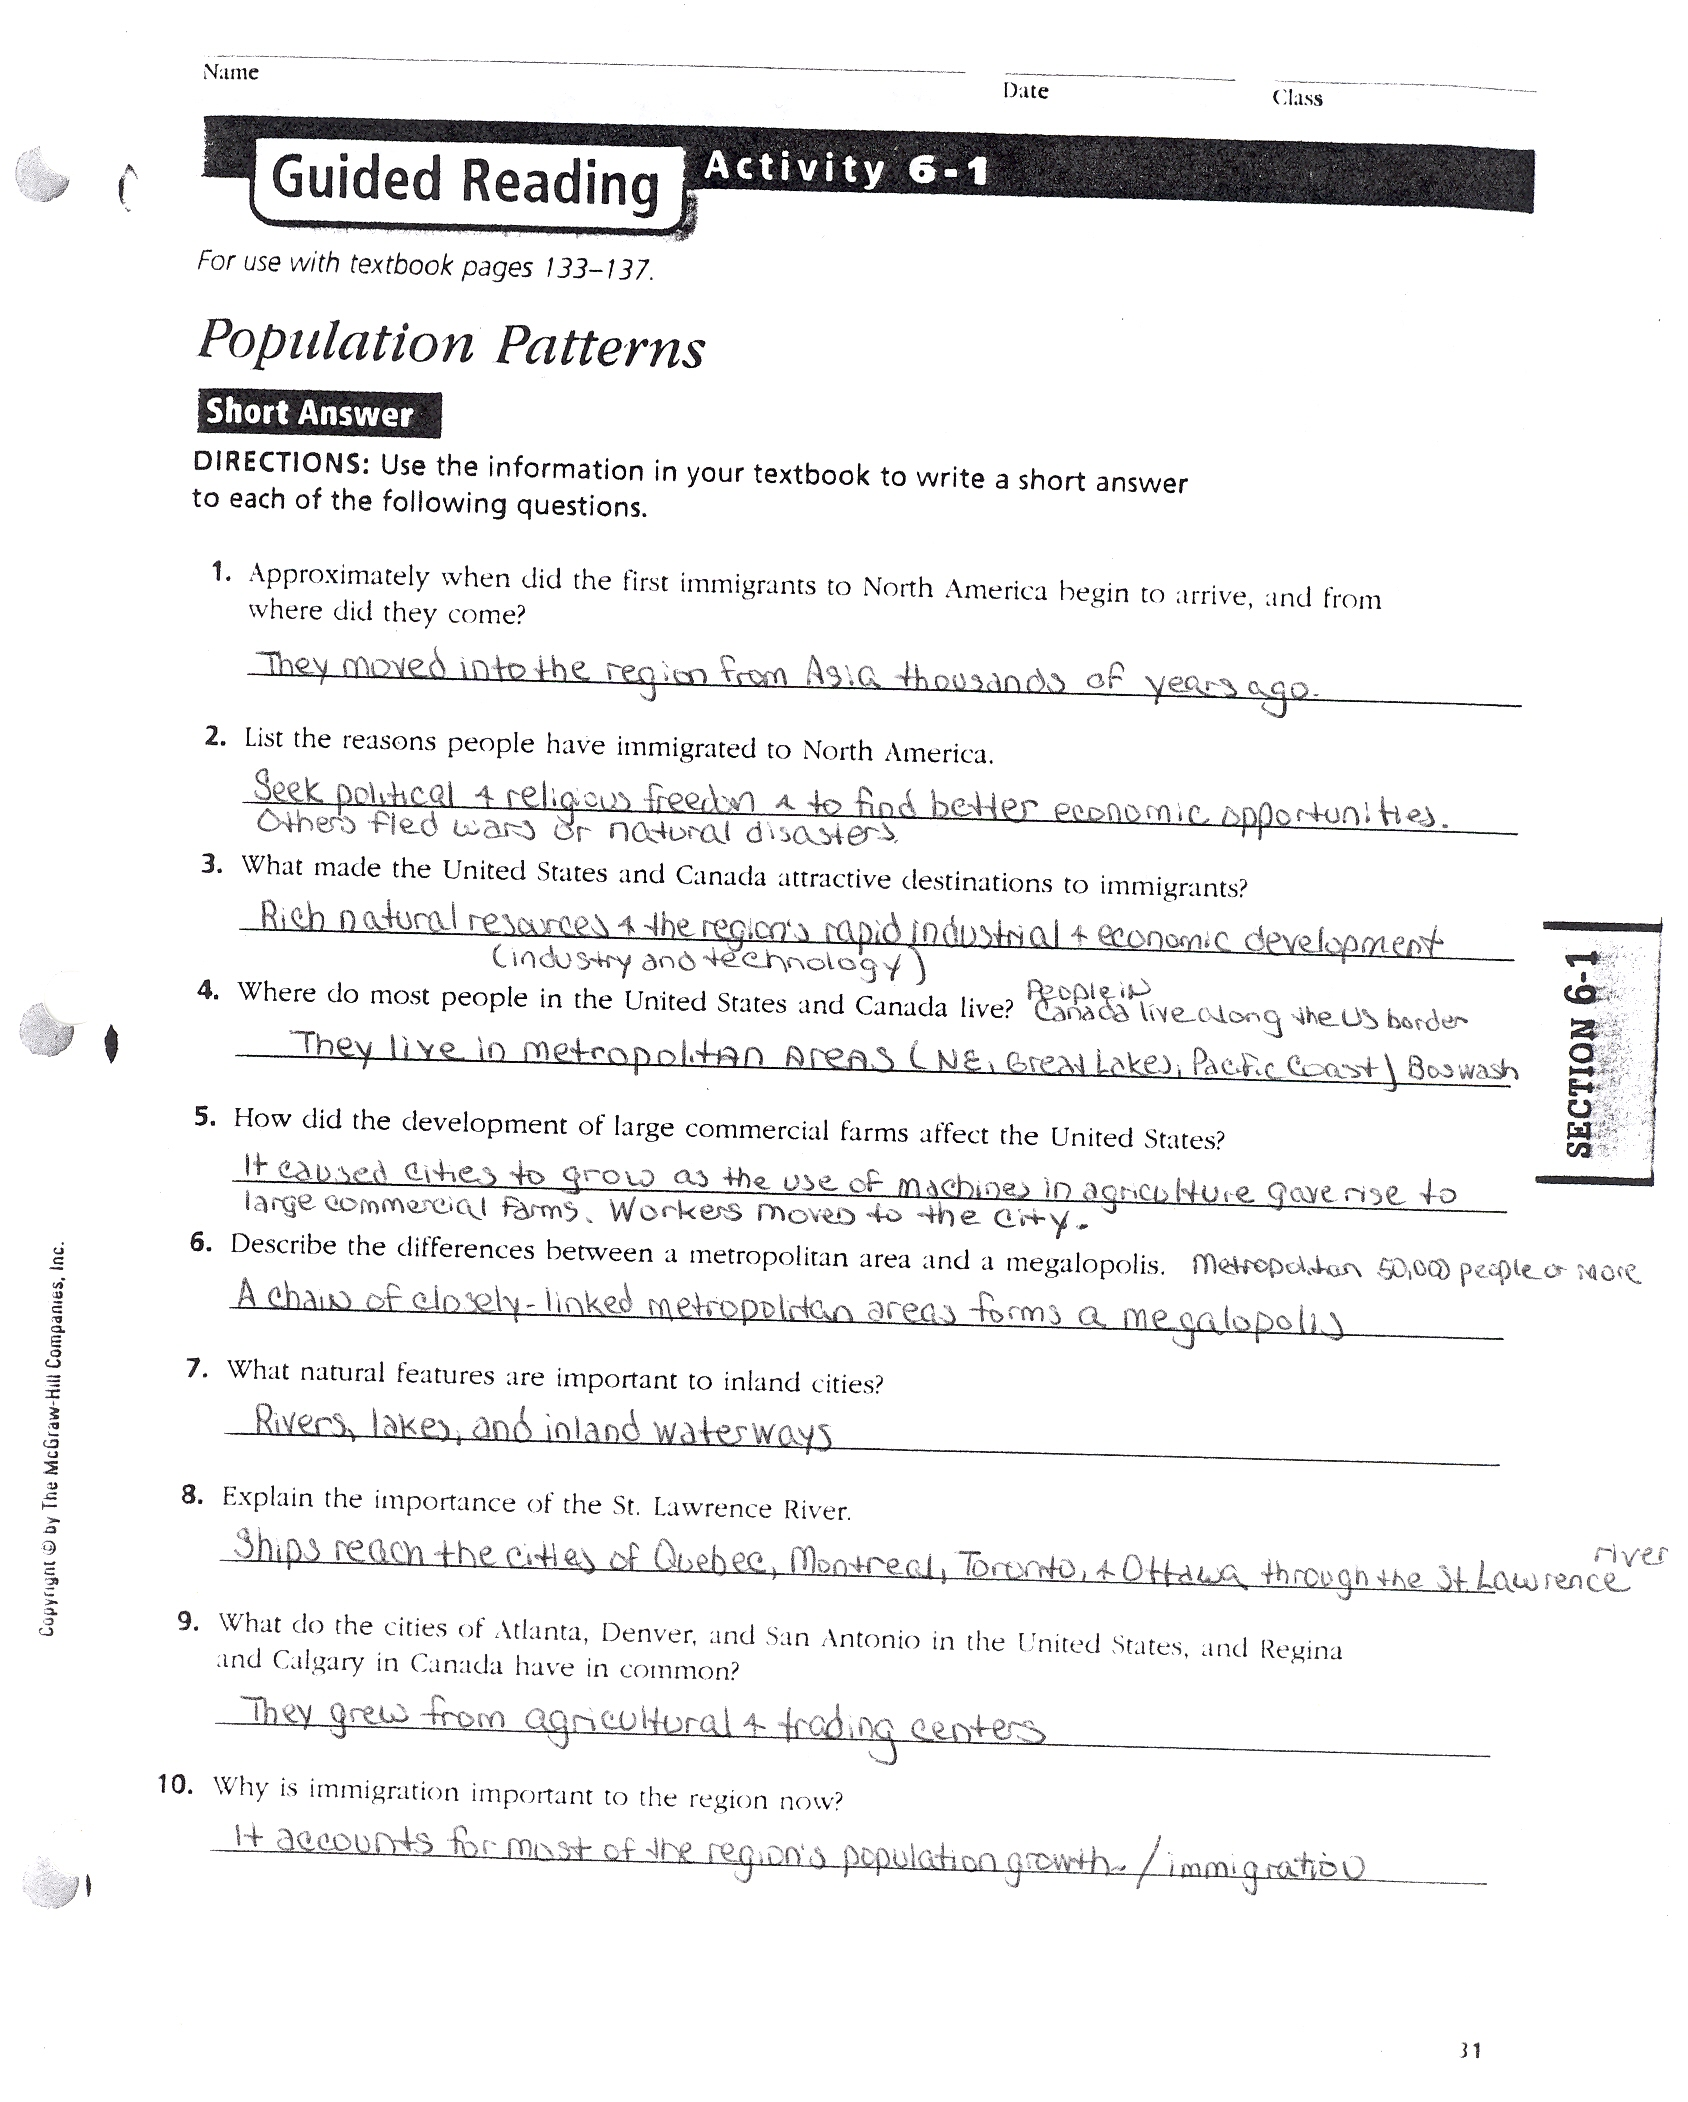 world history world geography rh acedwardslobos86 com Guided Reading Ideas Guided Reading Ideas